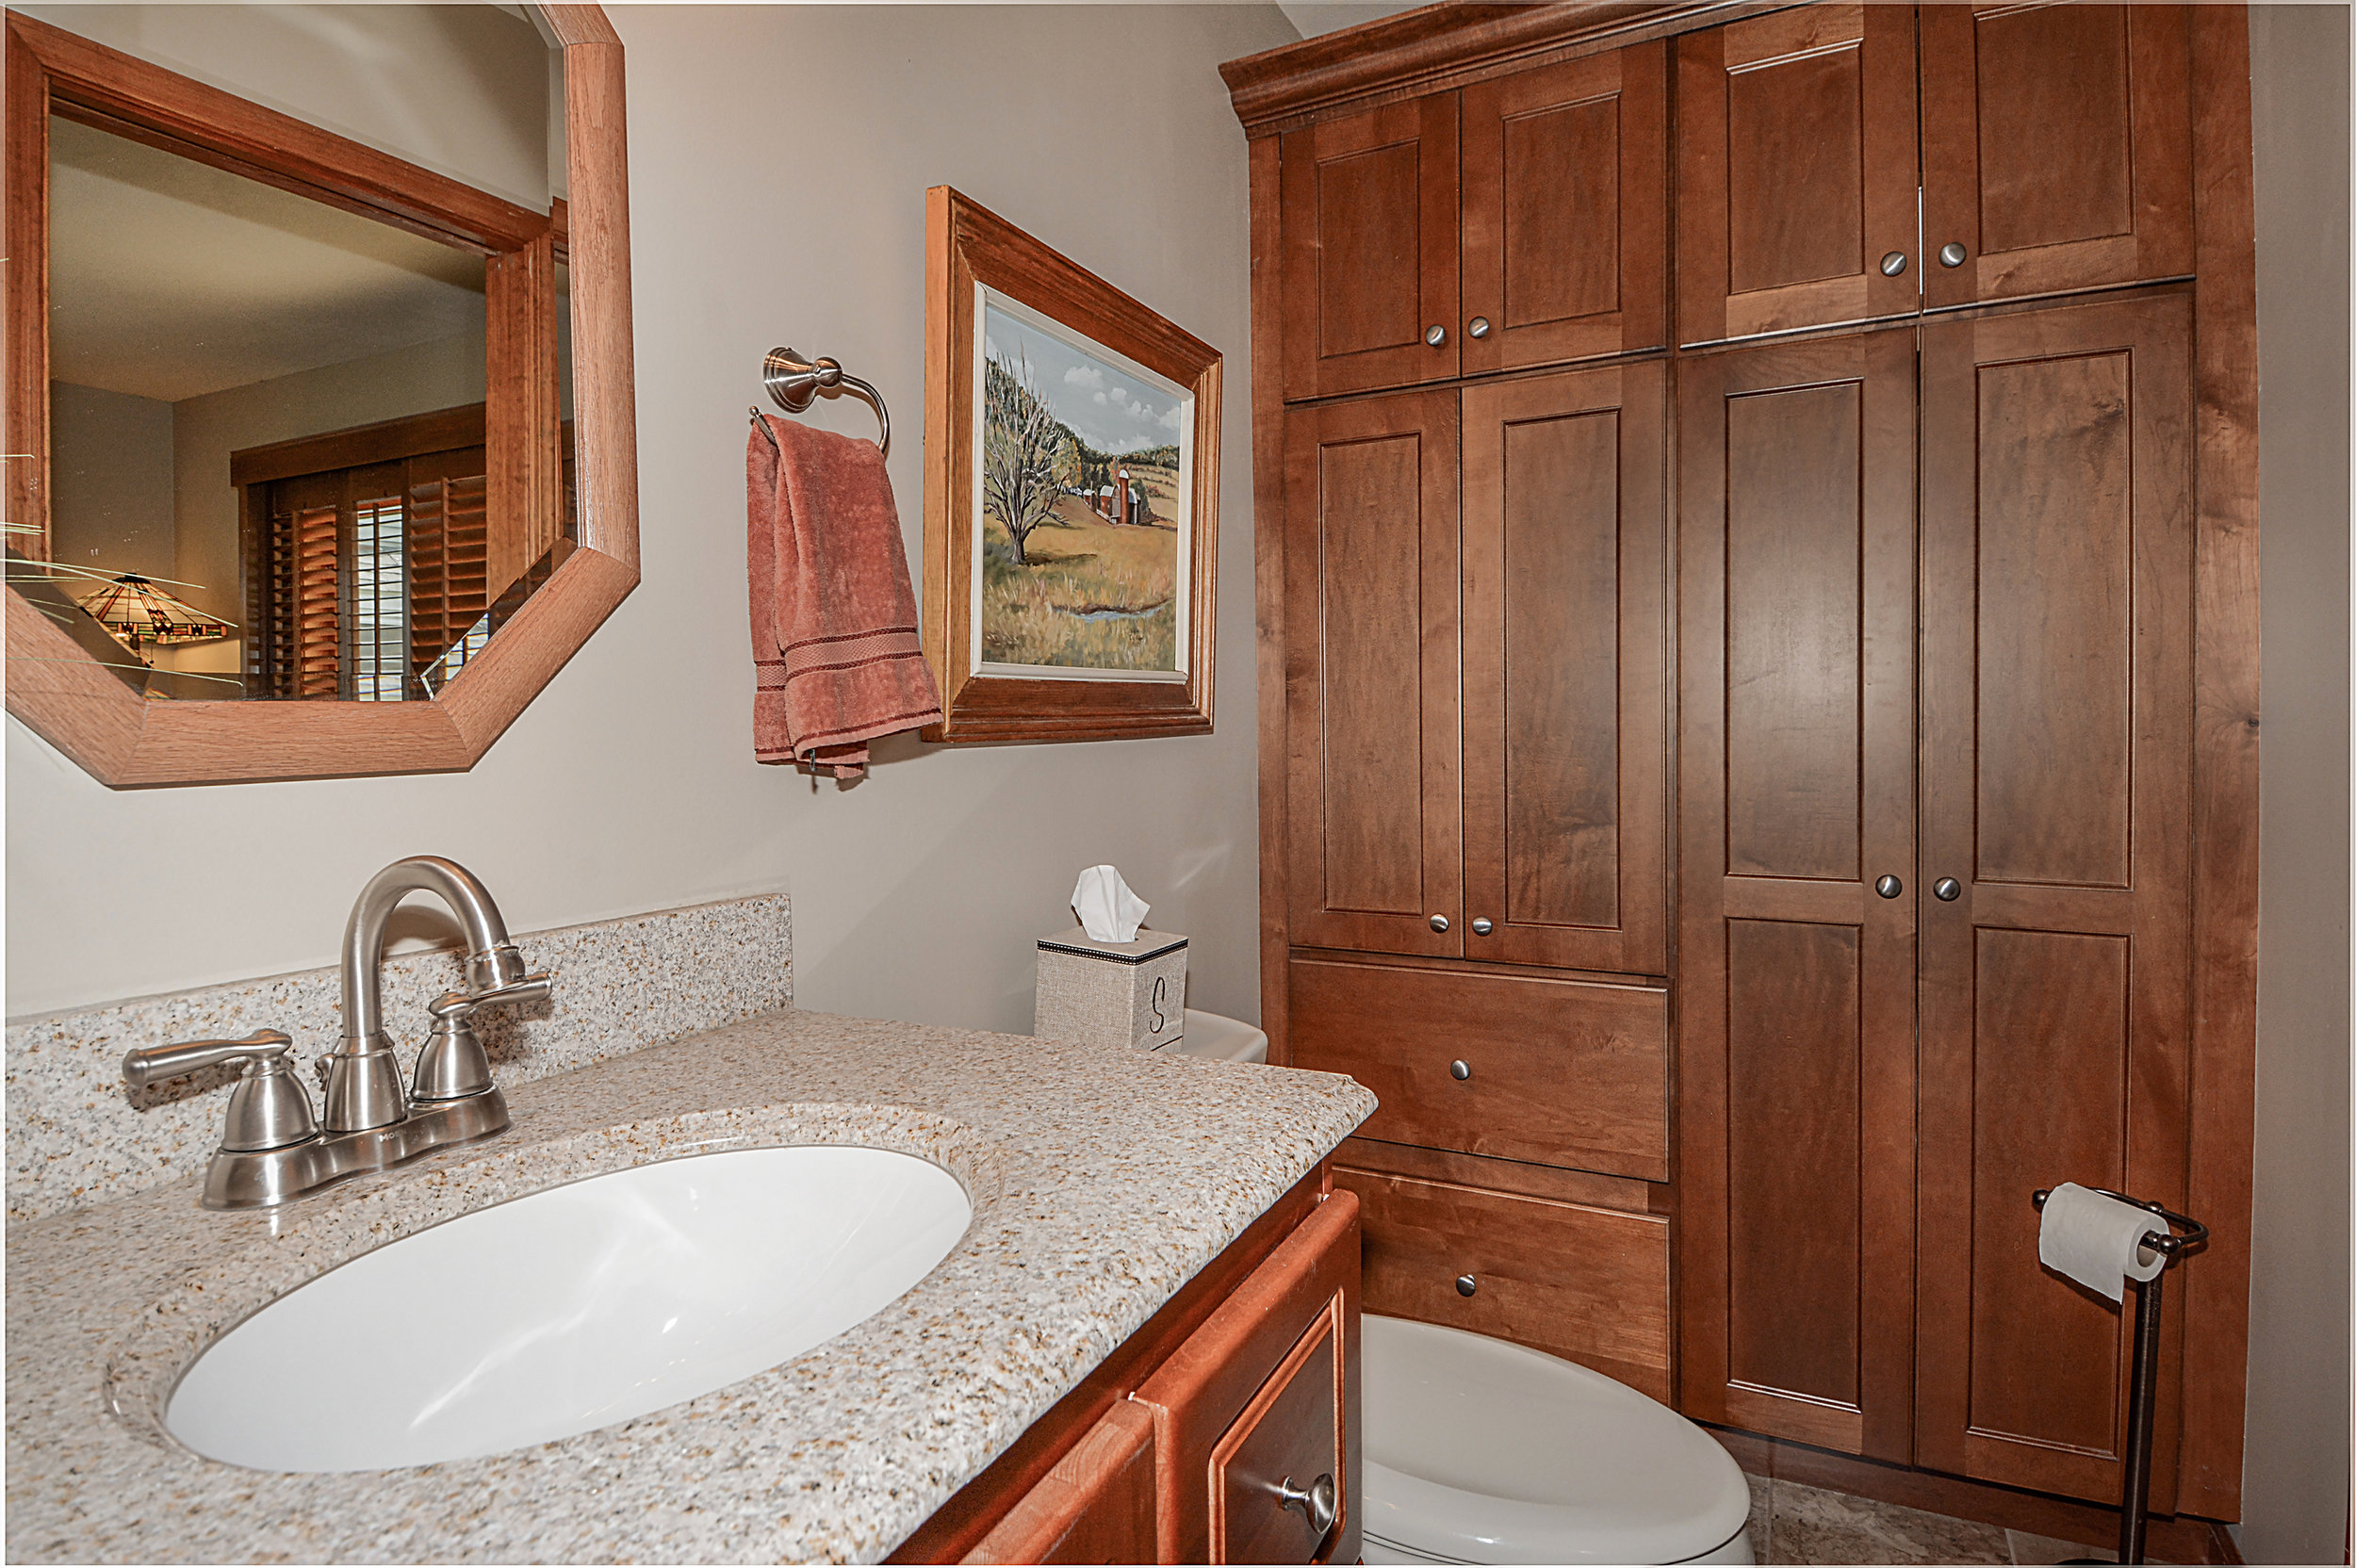 New Vanity in This Guest Bathroom & We Added Storage Cabinetry for Extra Linens and a Vacuum Cleaner. Updating a Bathroom Before Listing for Sale can Create a Faster Sale with Higher Returns. Naperville Il. Remodeled Townhome. Townhome Renovations & Updating.